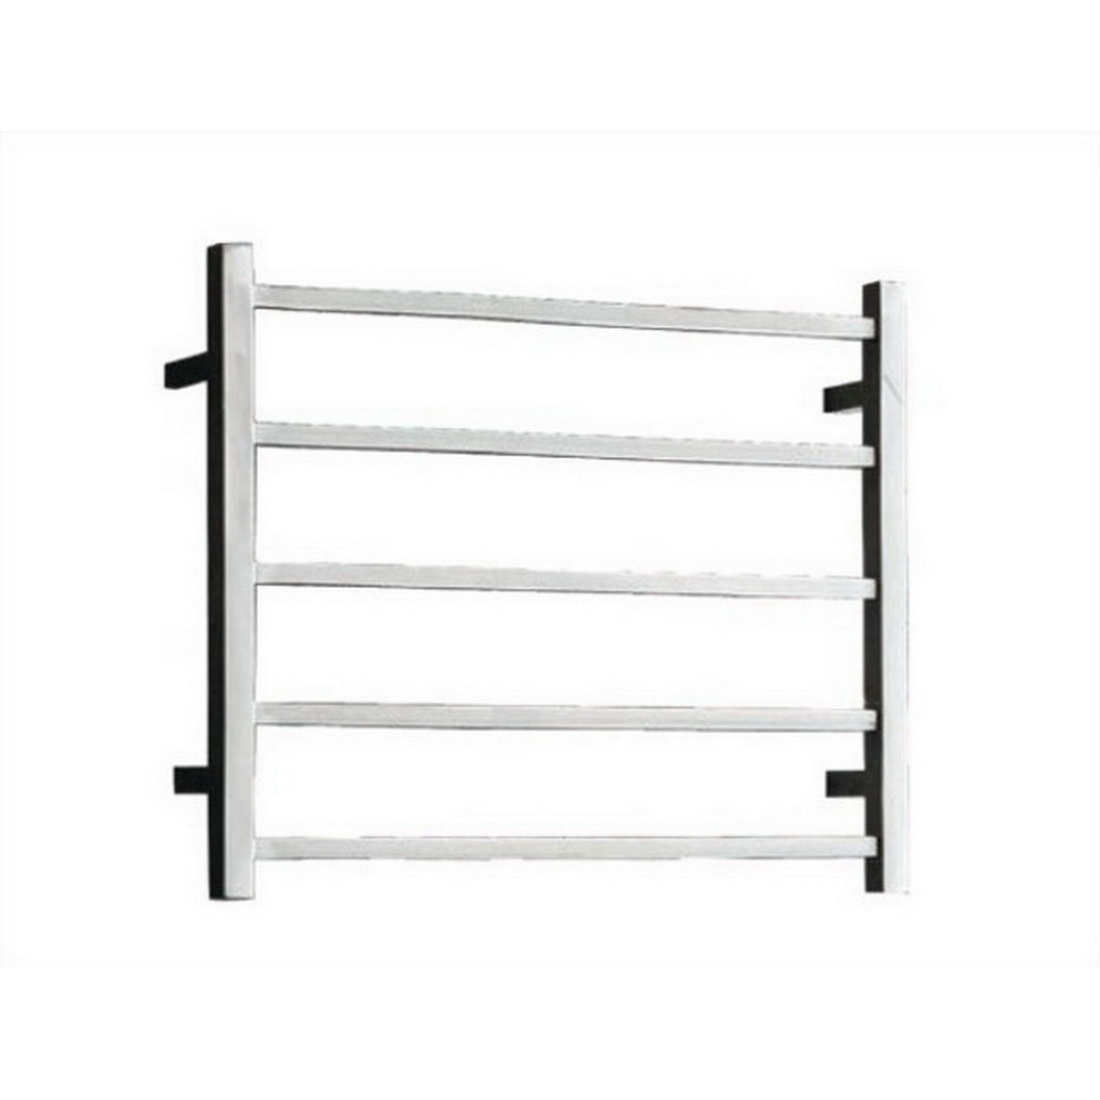 Newtech Square Heated Towel Rail Ladder 530 x 600 x 122 mm Mirror Polished 5 Bars 58 W ST65